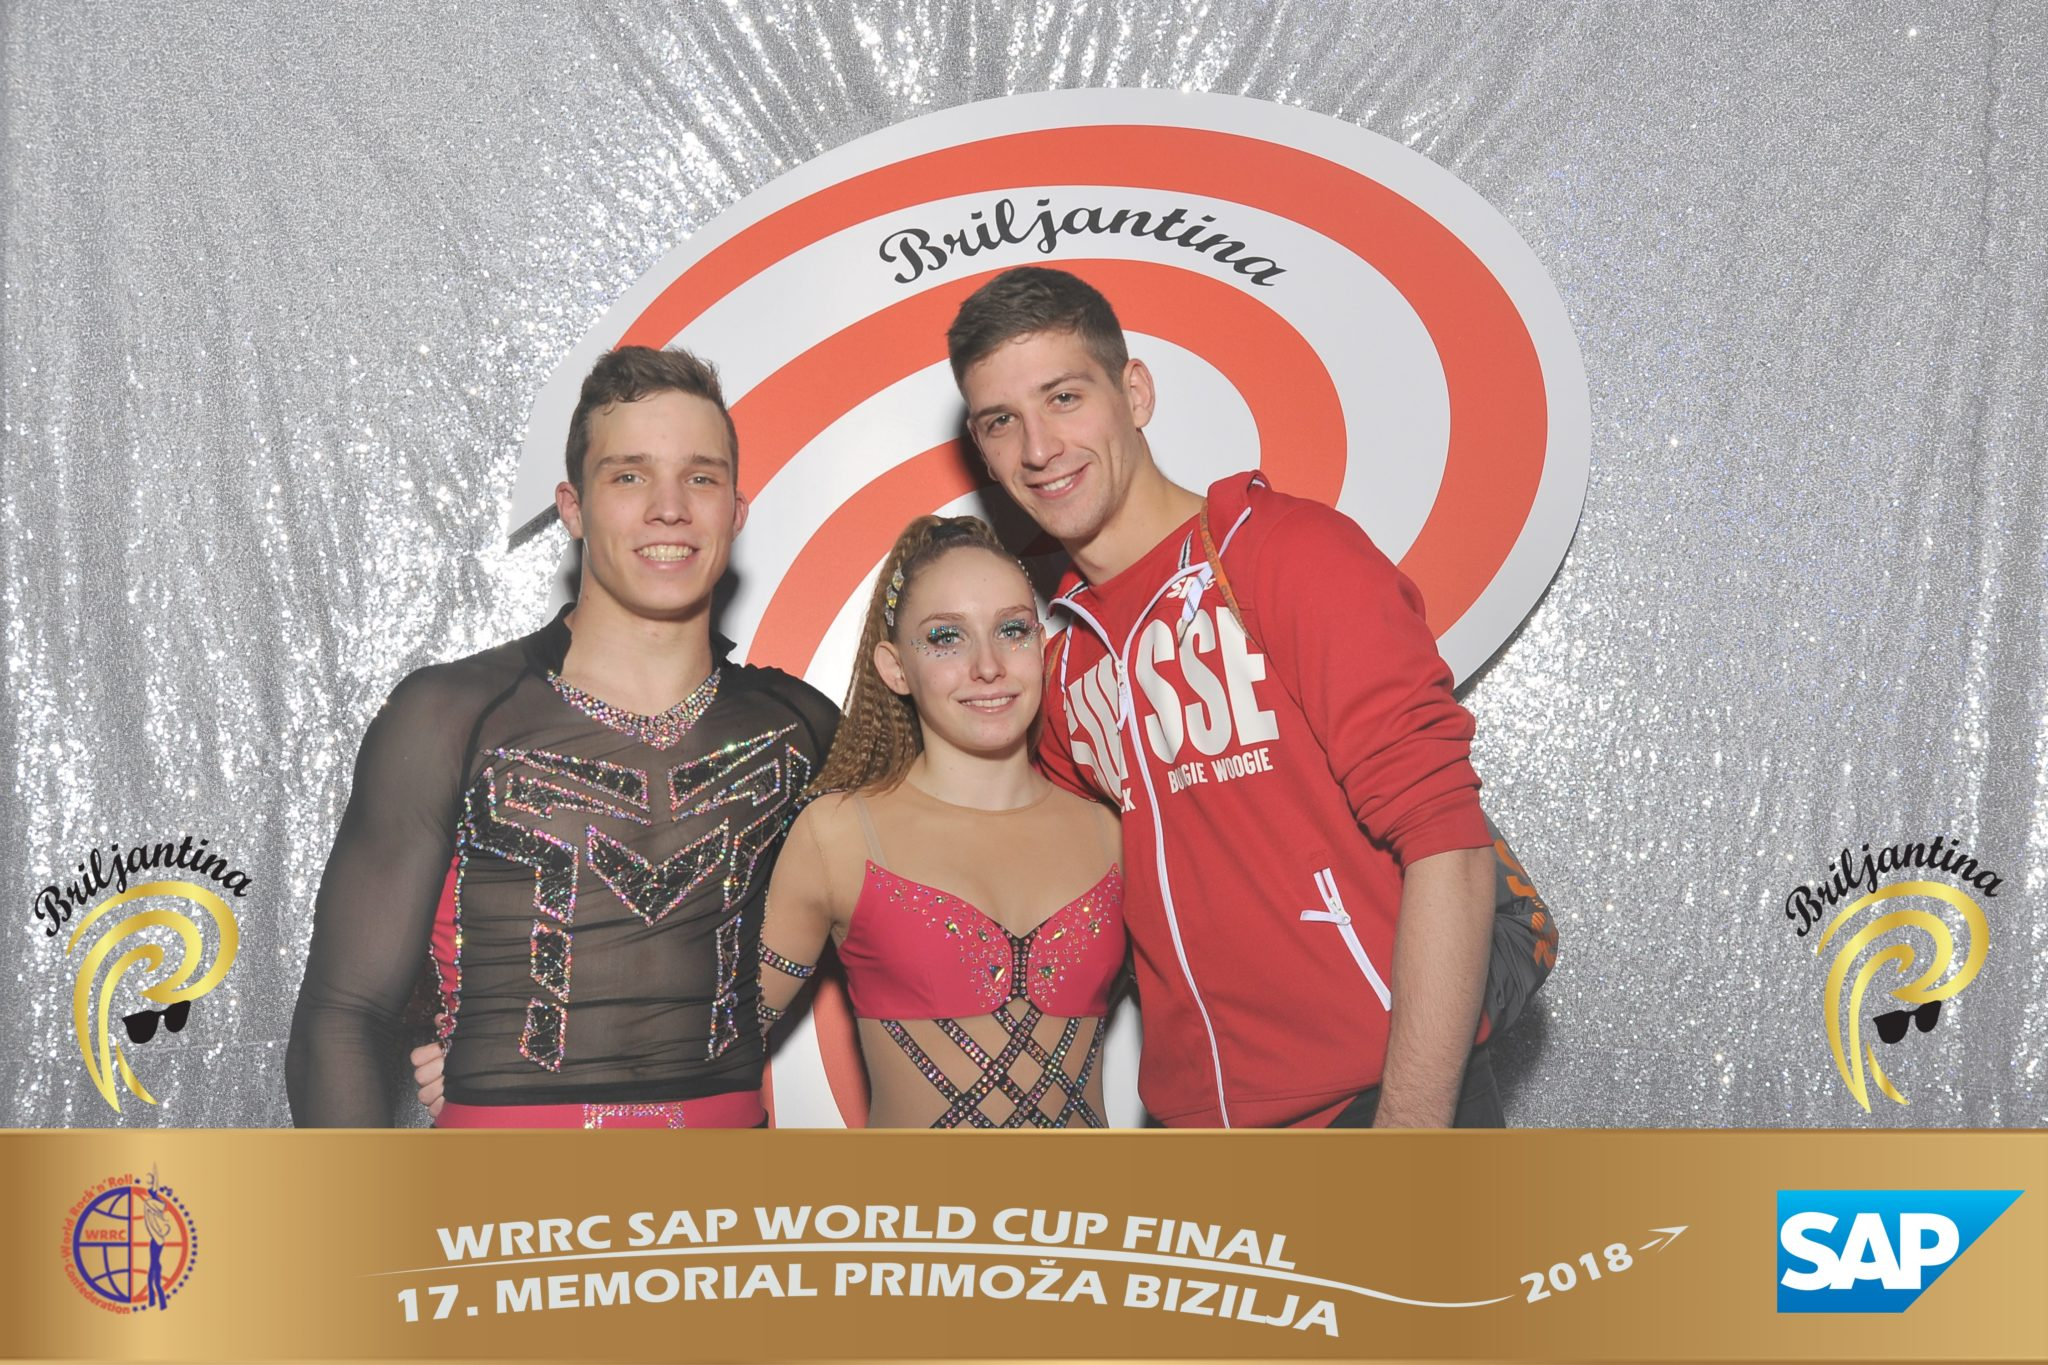 SAP Final World Cup & international Open